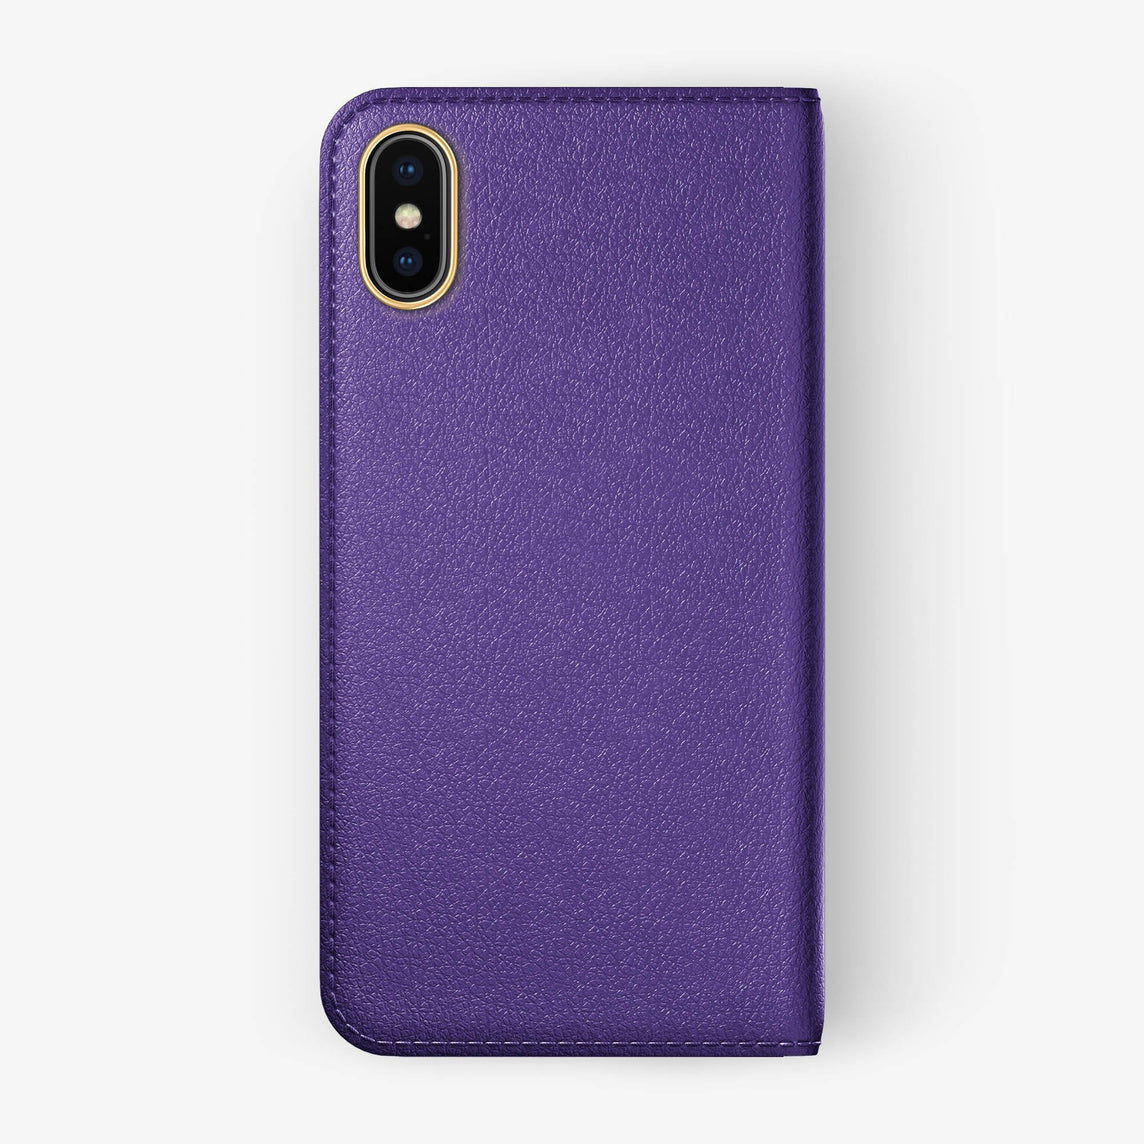 Violet Calfskin iPhone Folio Case for iPhone X finishing yellow gold - Hadoro Luxury Cases - img5